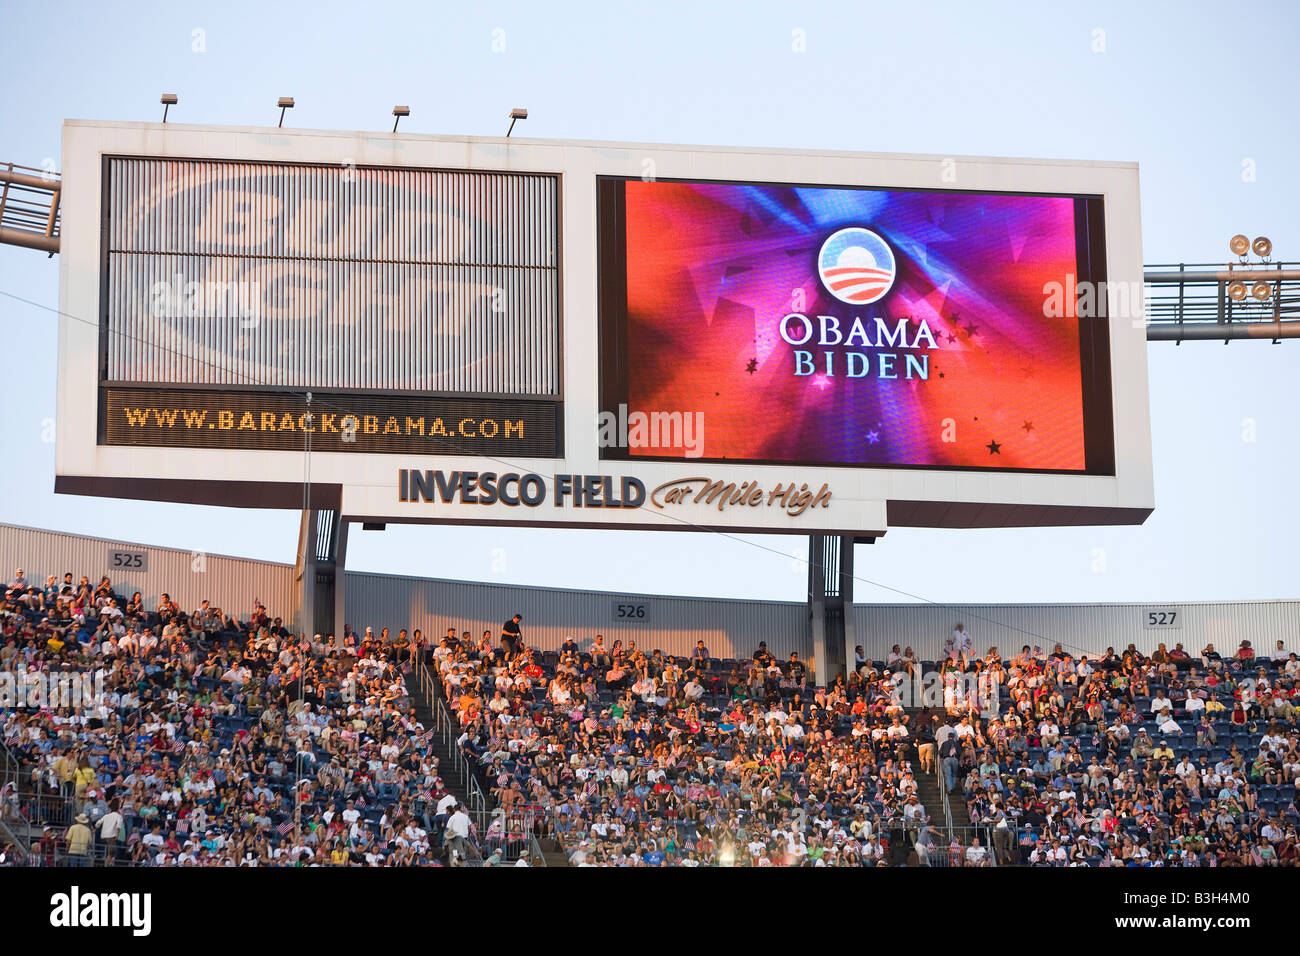 A sign for Obama and Biden pops up as the sun sets over Invesco Field - Stock Image